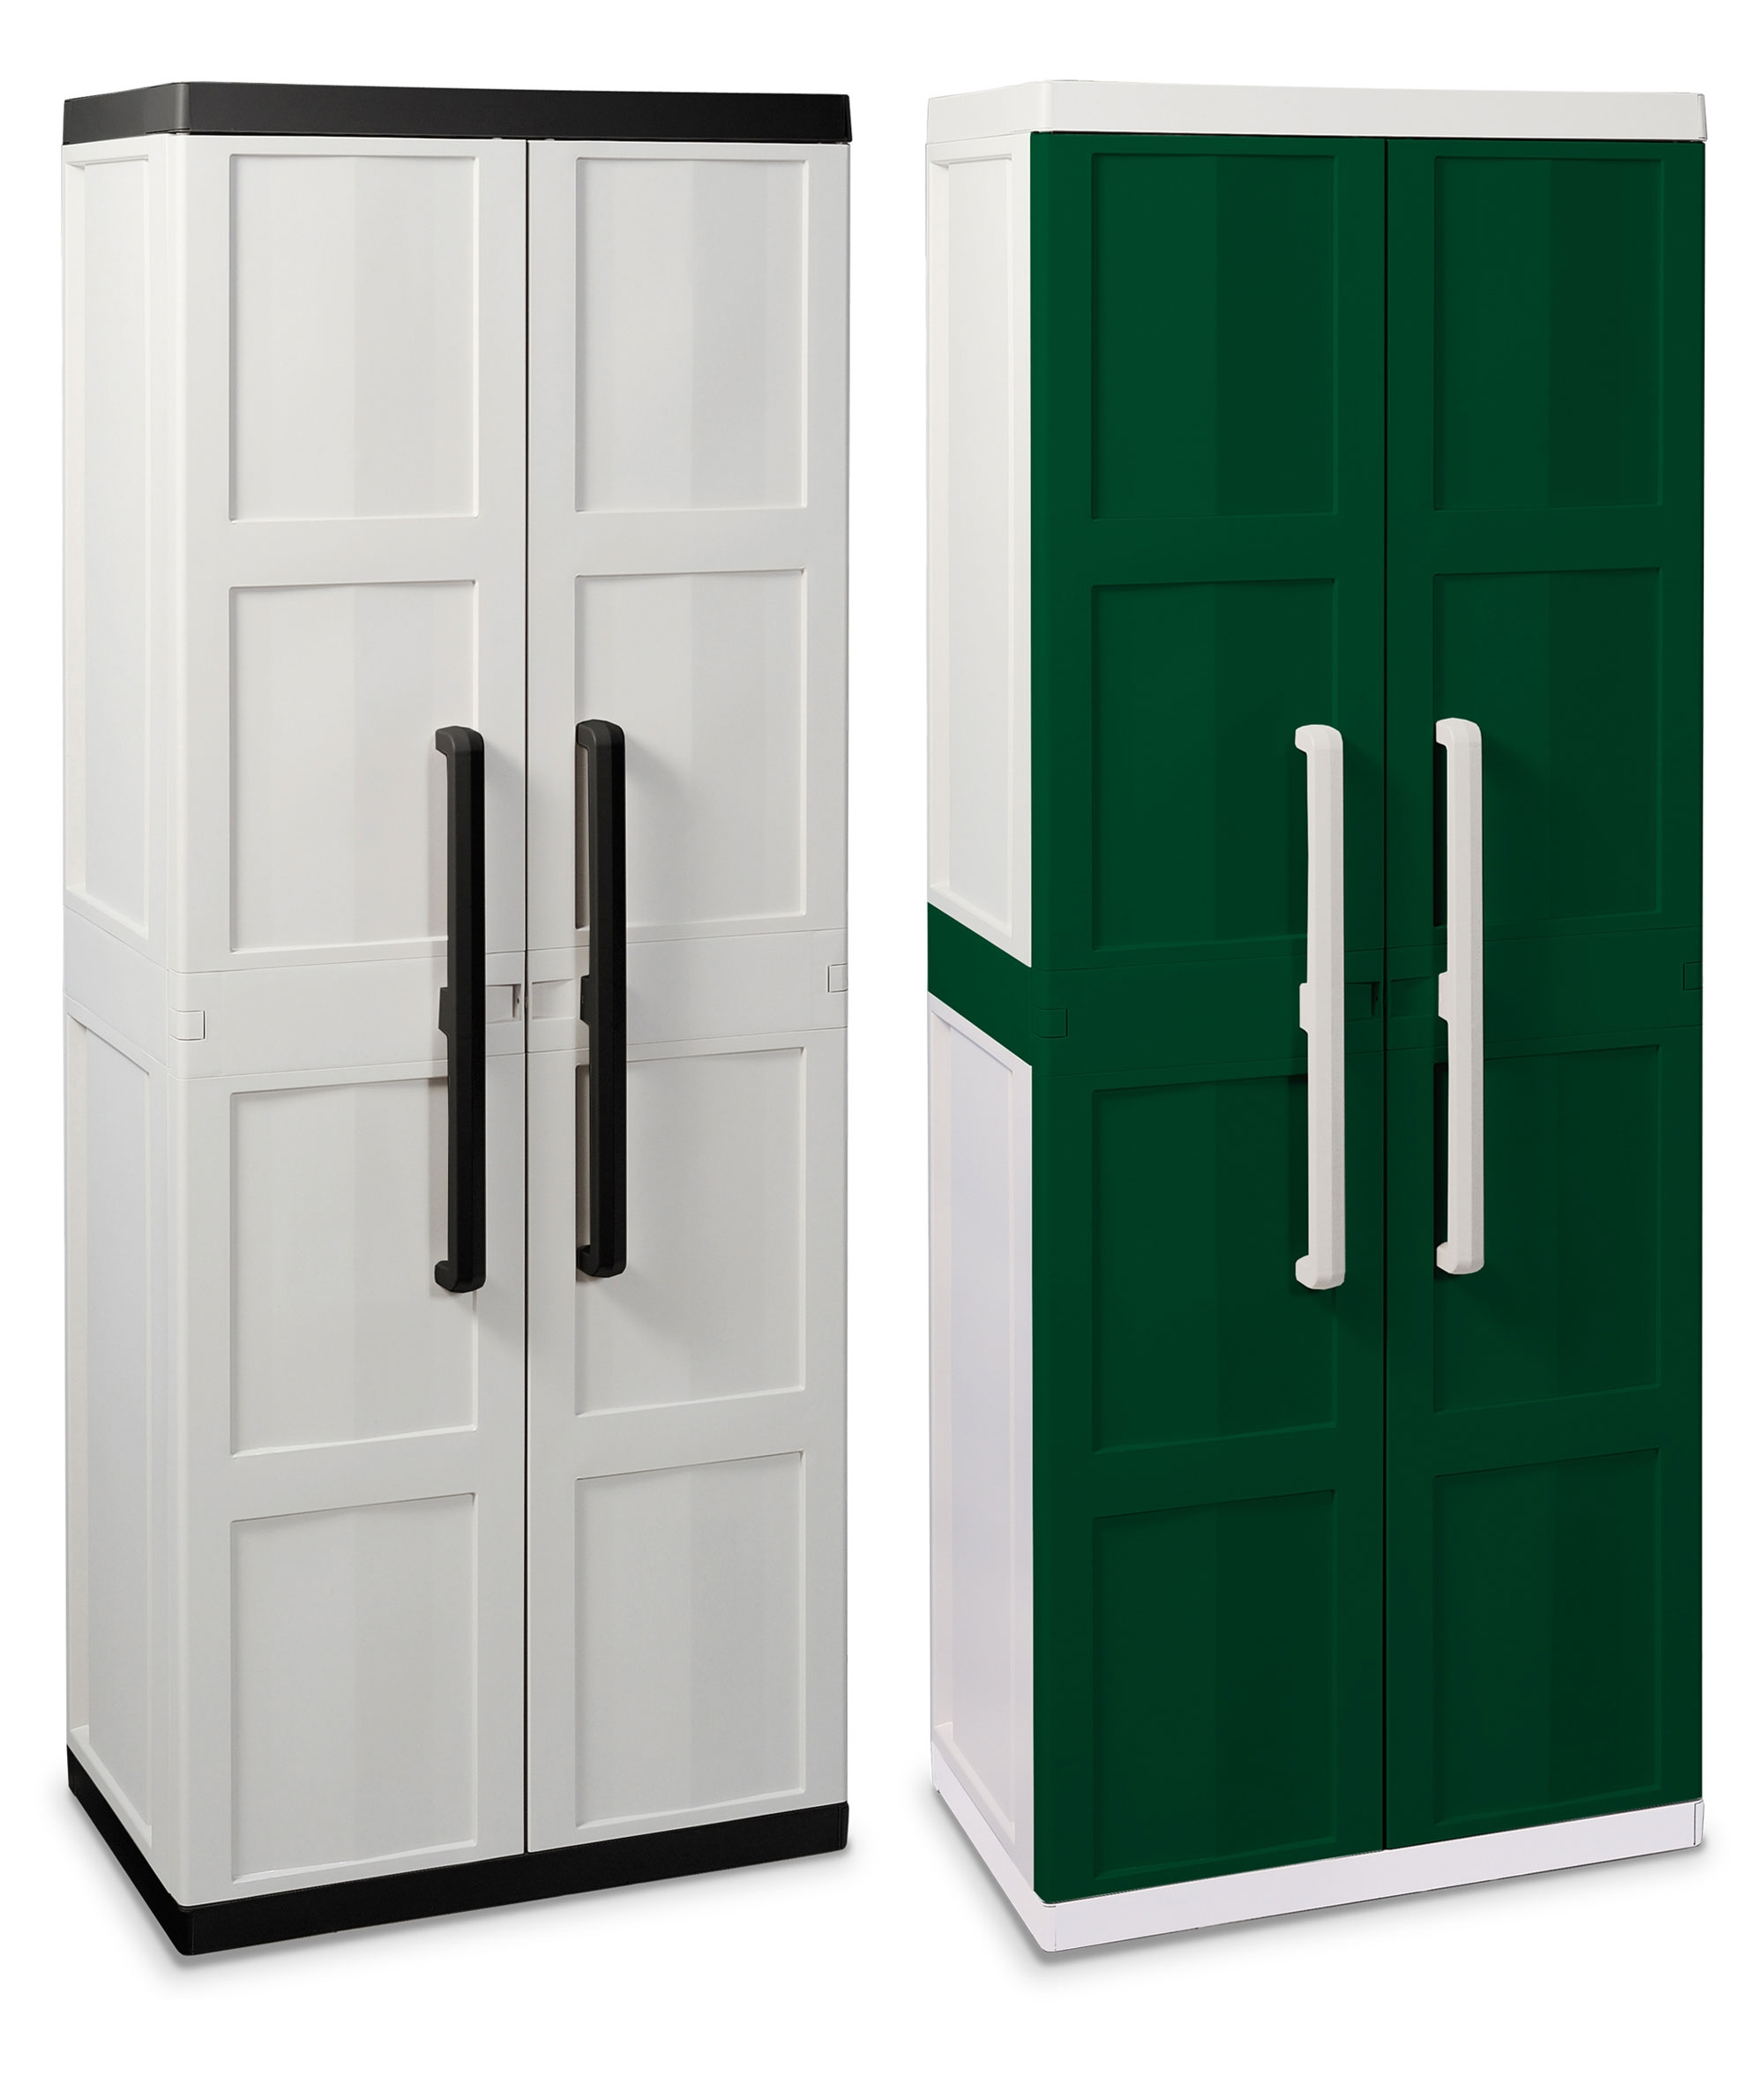 Upright Storage Cupboard Creative Cabinets Decoration With Large Storage Cupboards (#11 of 12)